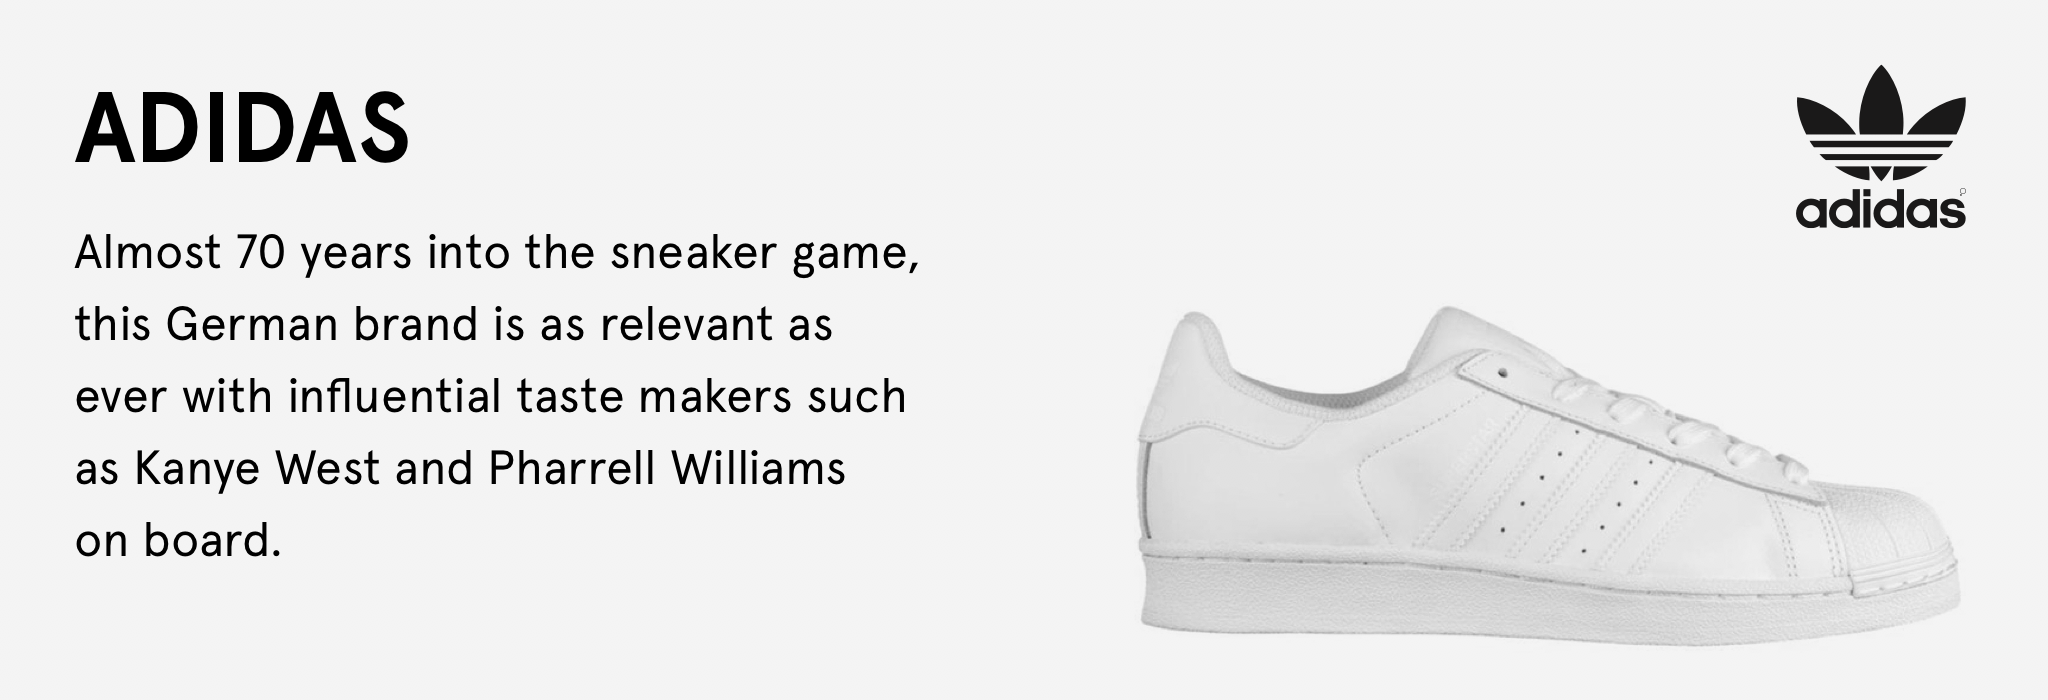 Almost 70 years into the sneaker game, this German brand is as relevant as ever with influential taste makers such as Kanye West and Pharrell Williams on board.